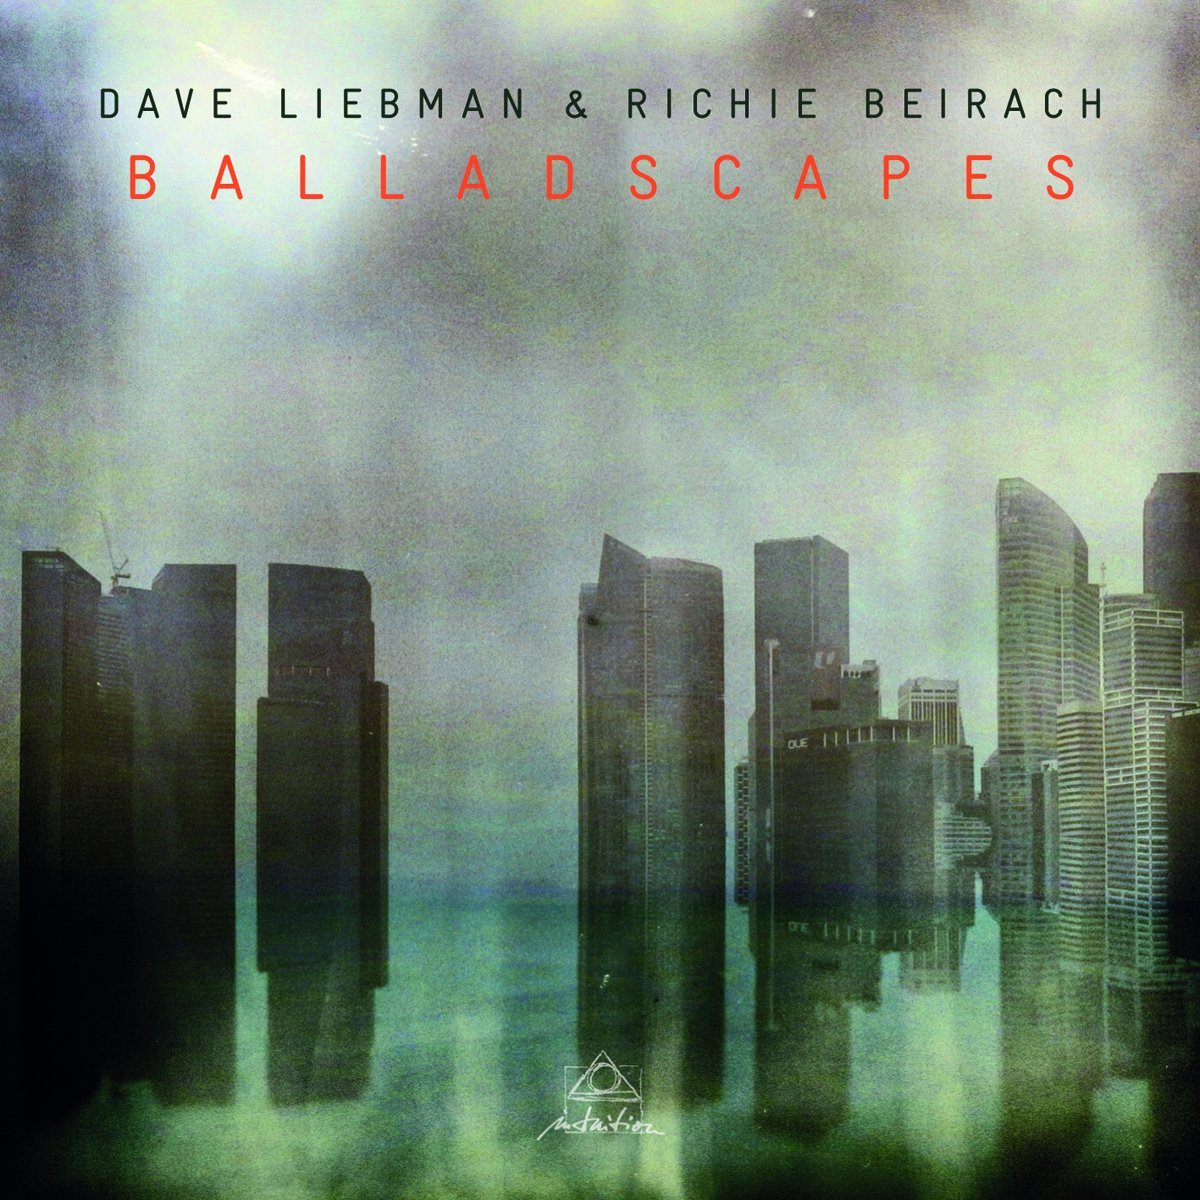 Liebman-Beirach Recording 'Balladscapes' reviewed on Classicalite